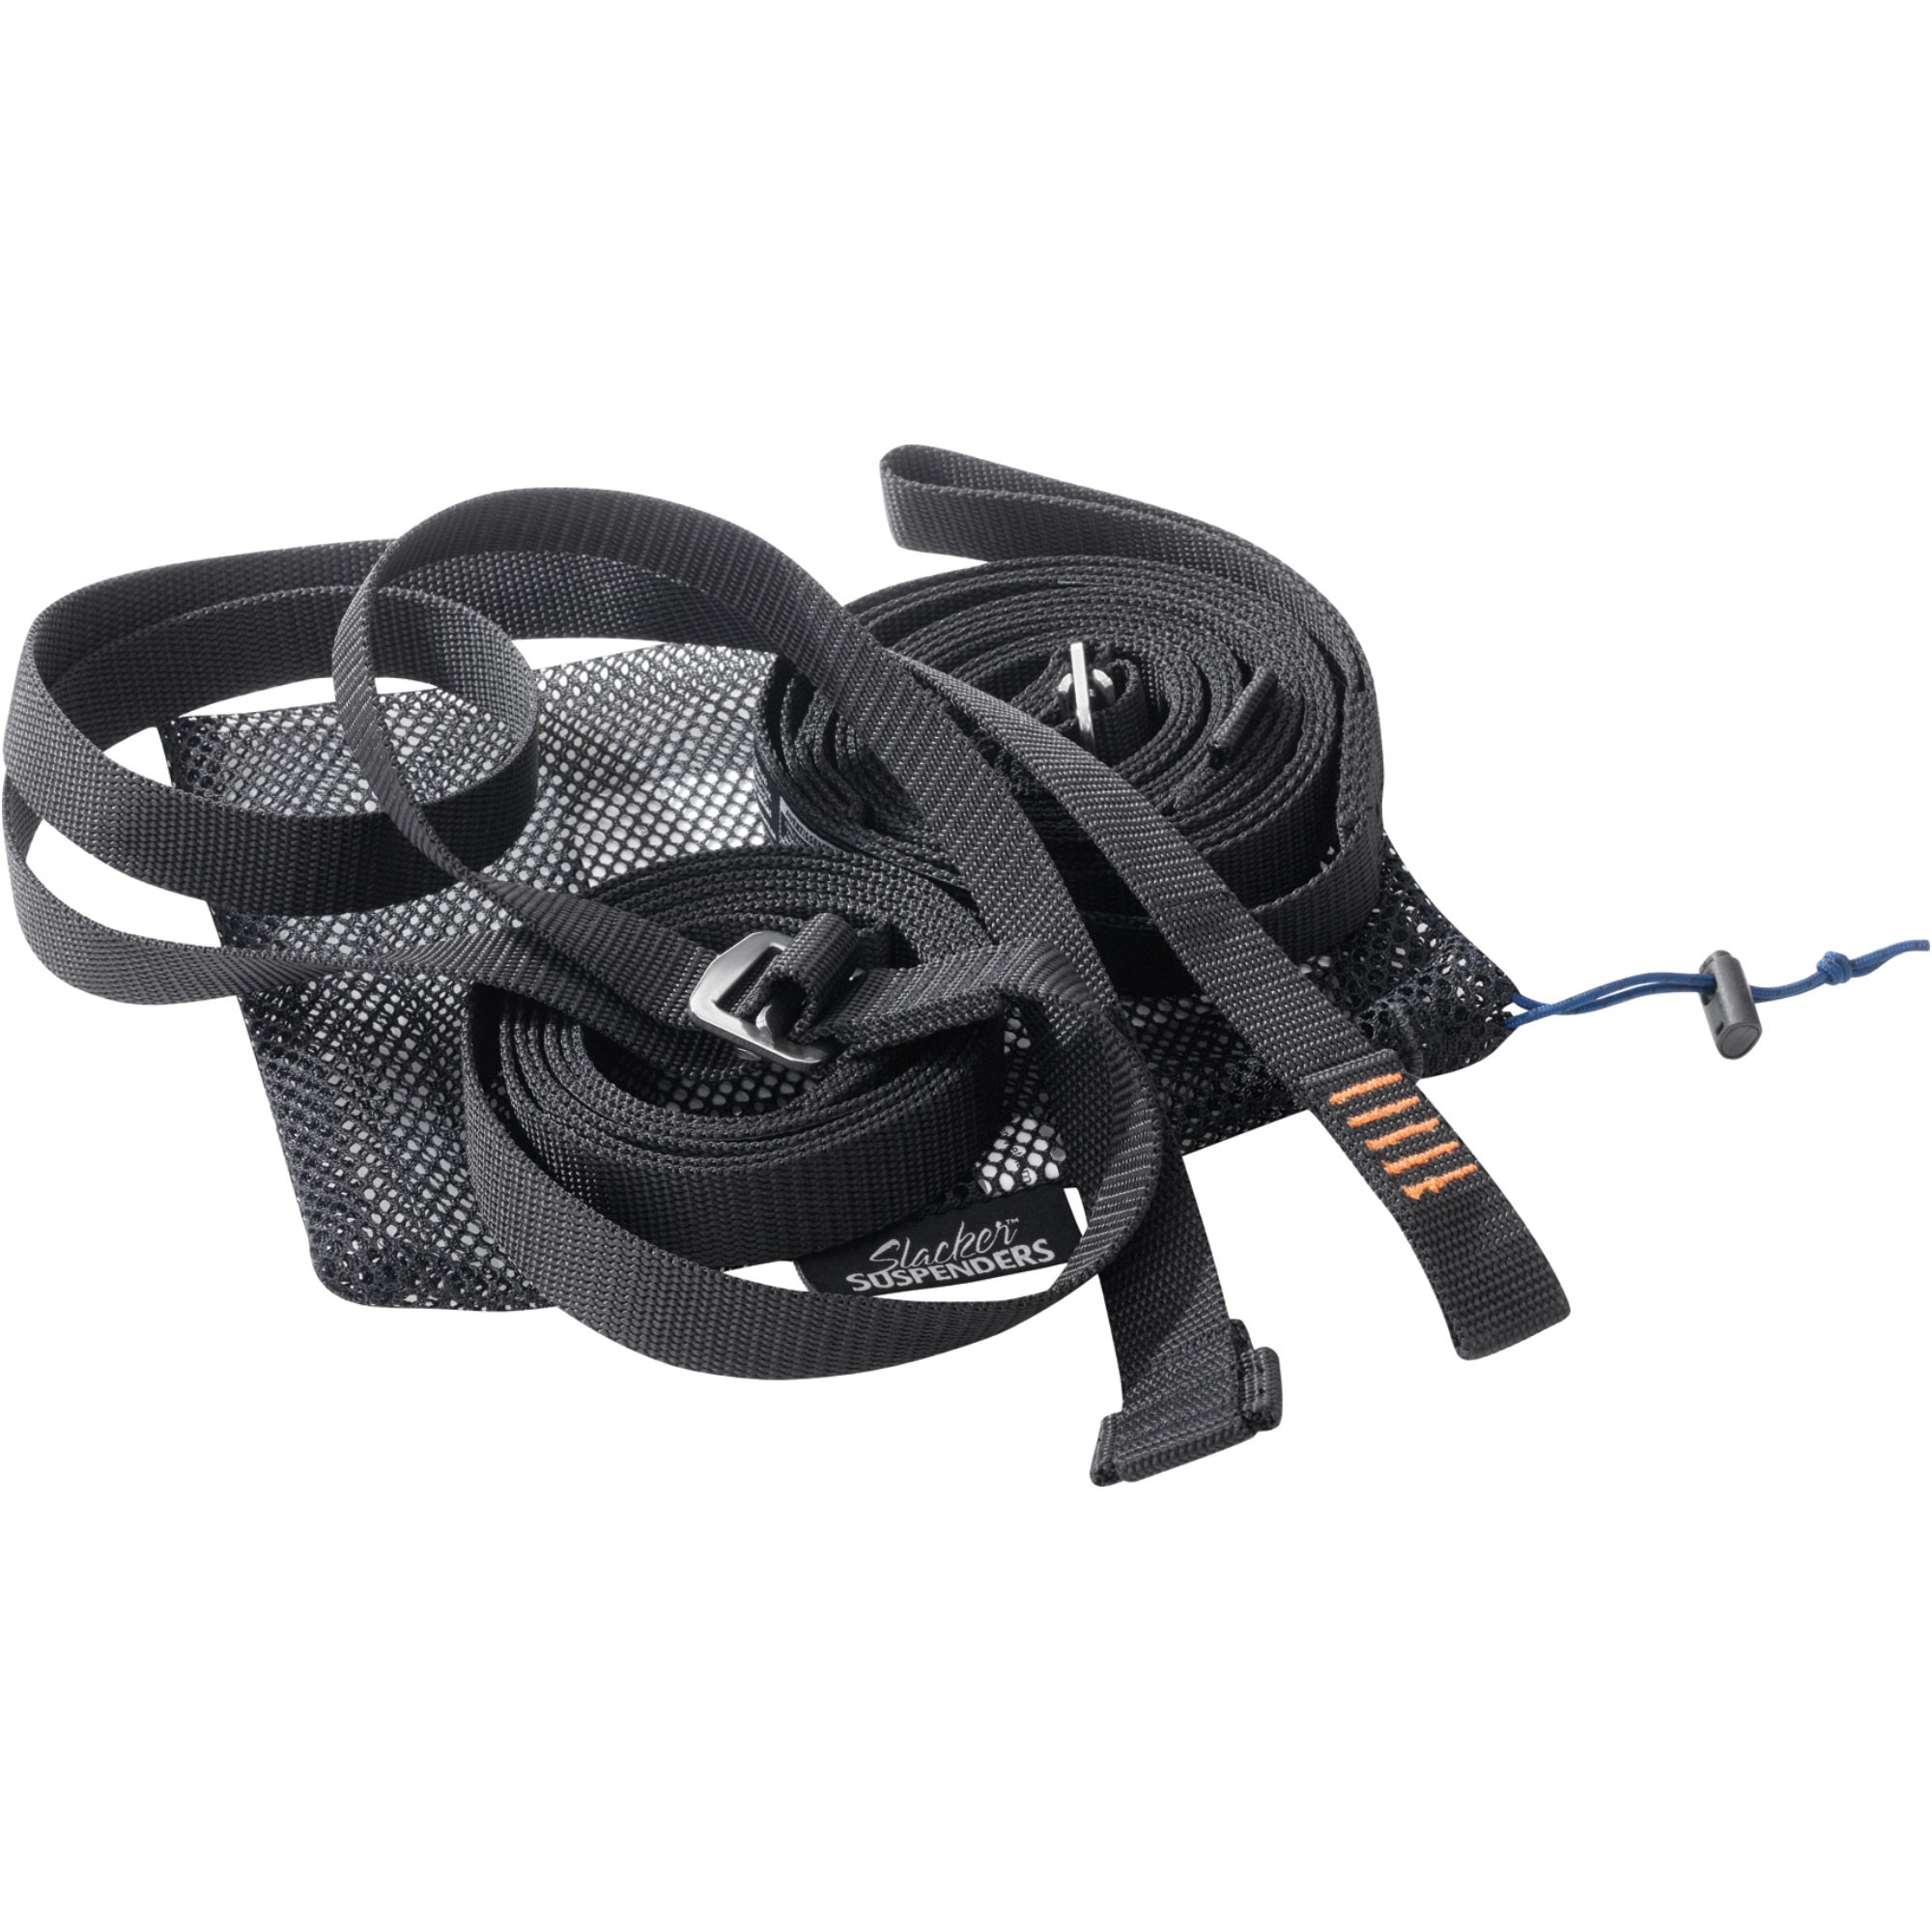 Therm-a-Rest Suspender Tree Straps